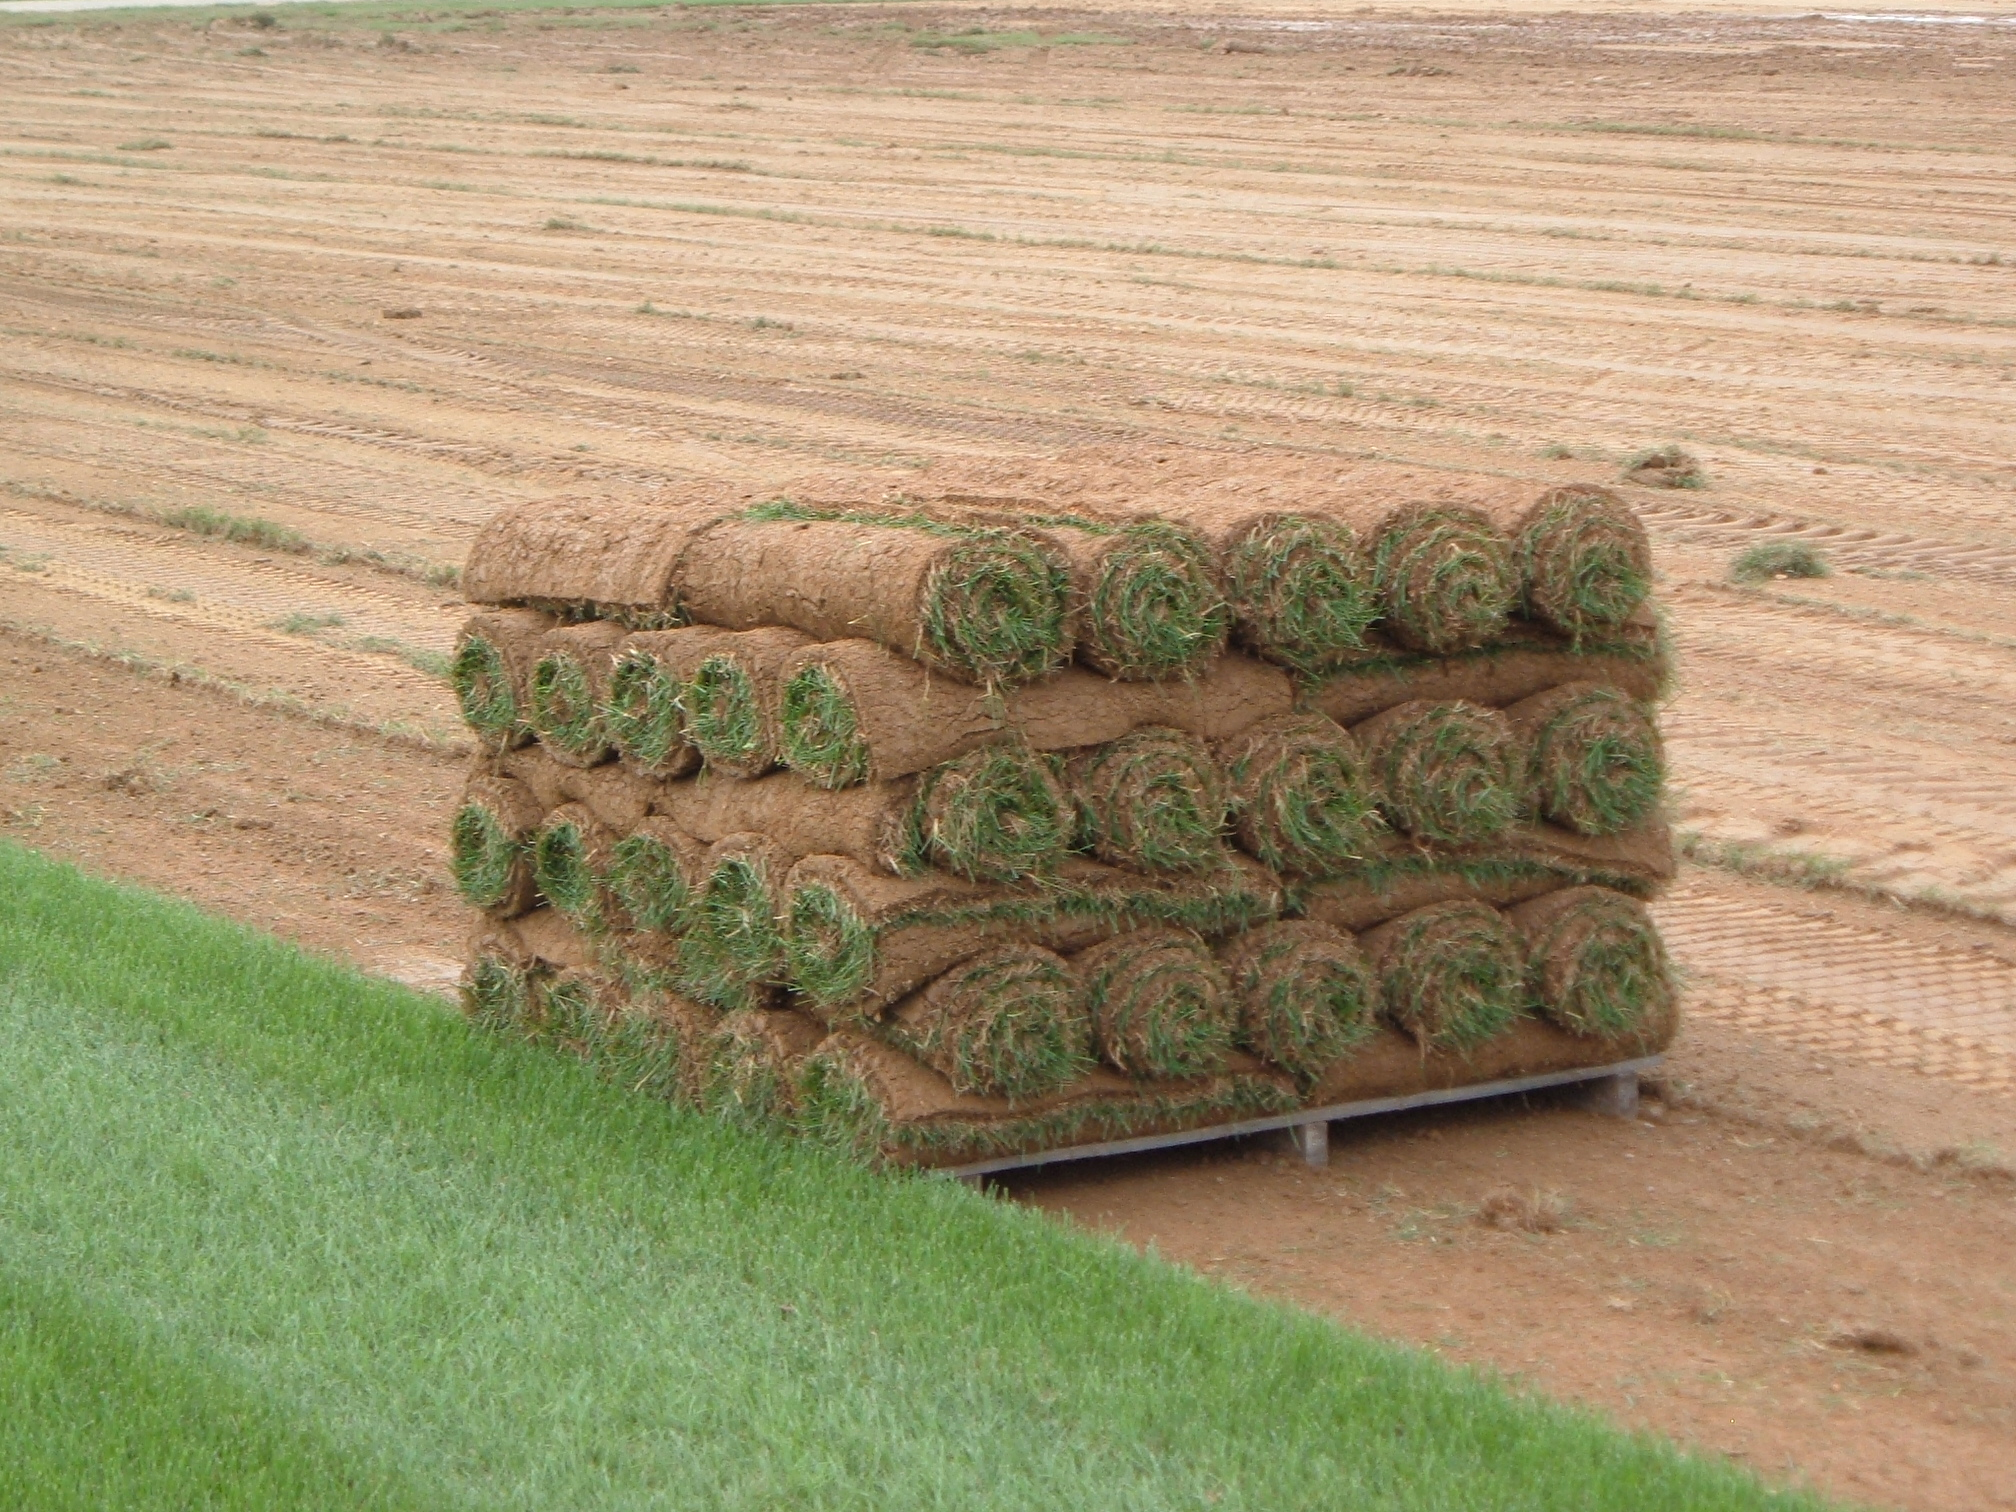 A pallet of sod ready for shipment. Most pallet sizes are commonly sold in ranges between 400, 450, or 500 sq. ft. in size. (Credit: Max Wahrhaftig)